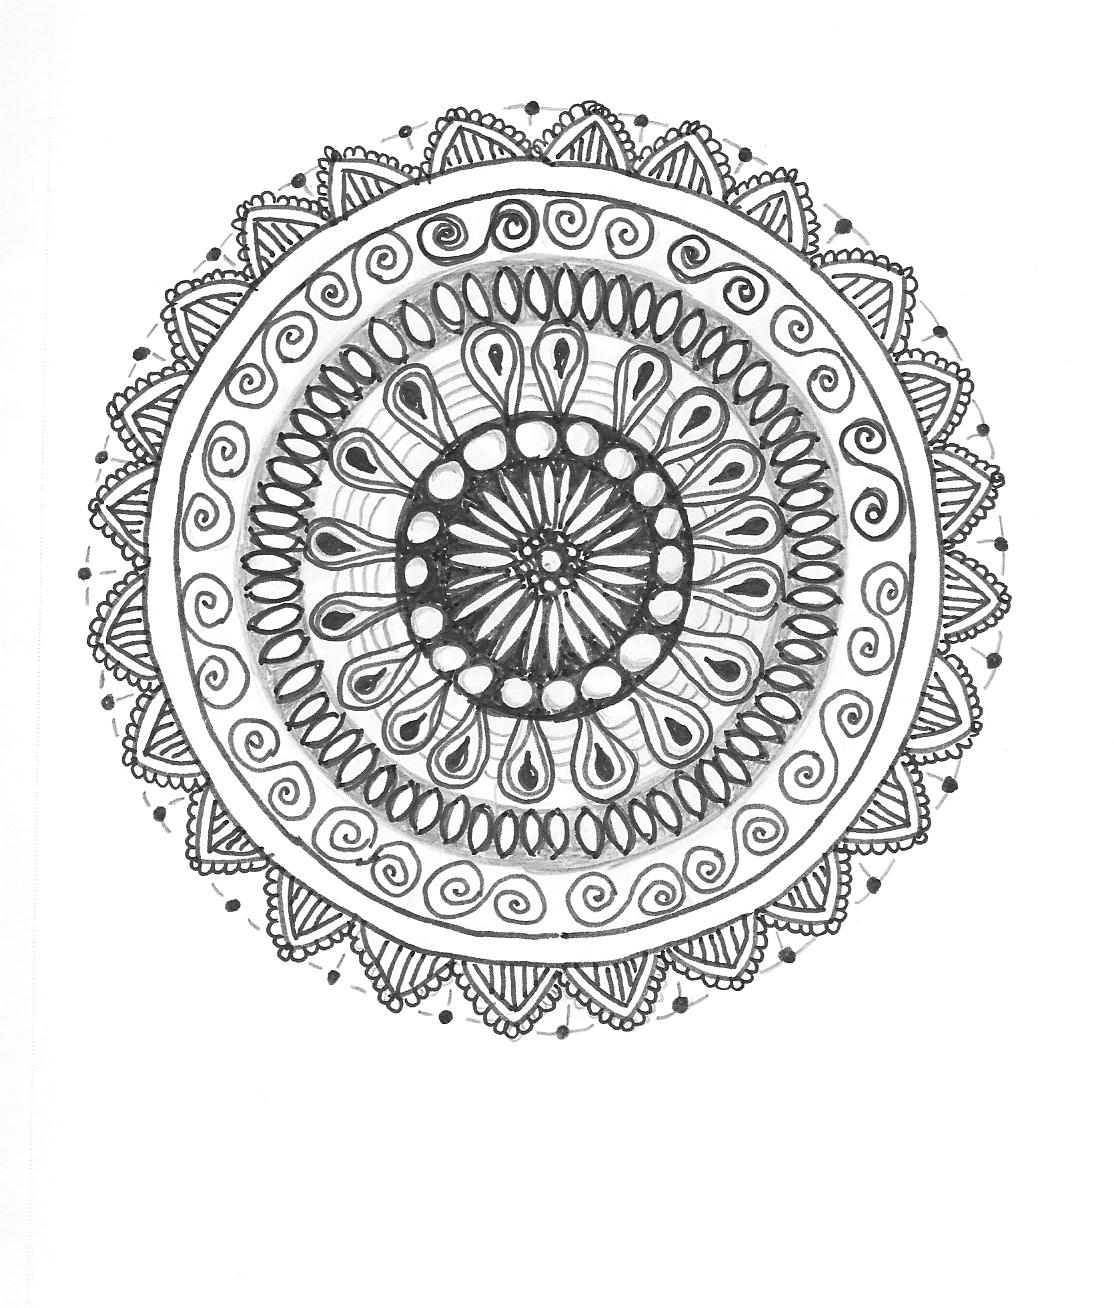 Images of Simple Zentangle Flowers - #rock-cafe